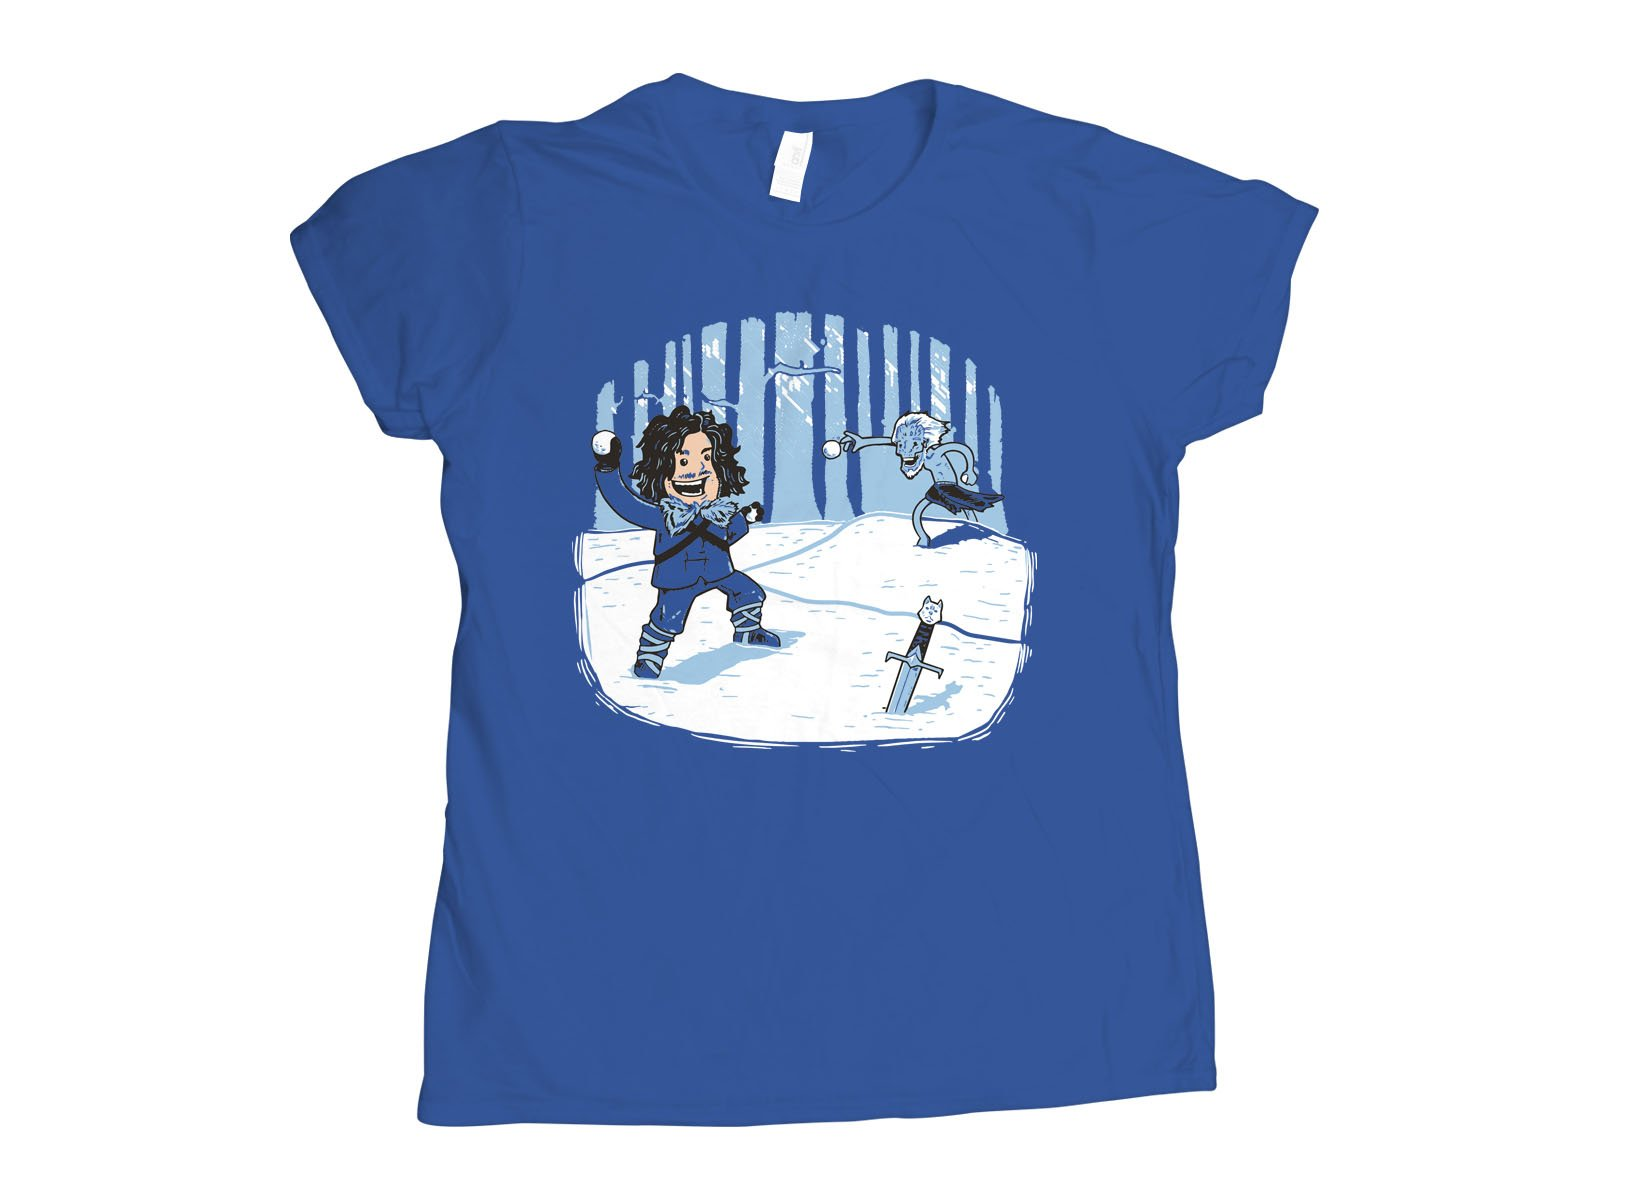 Jon Snowball on Womens T-Shirt